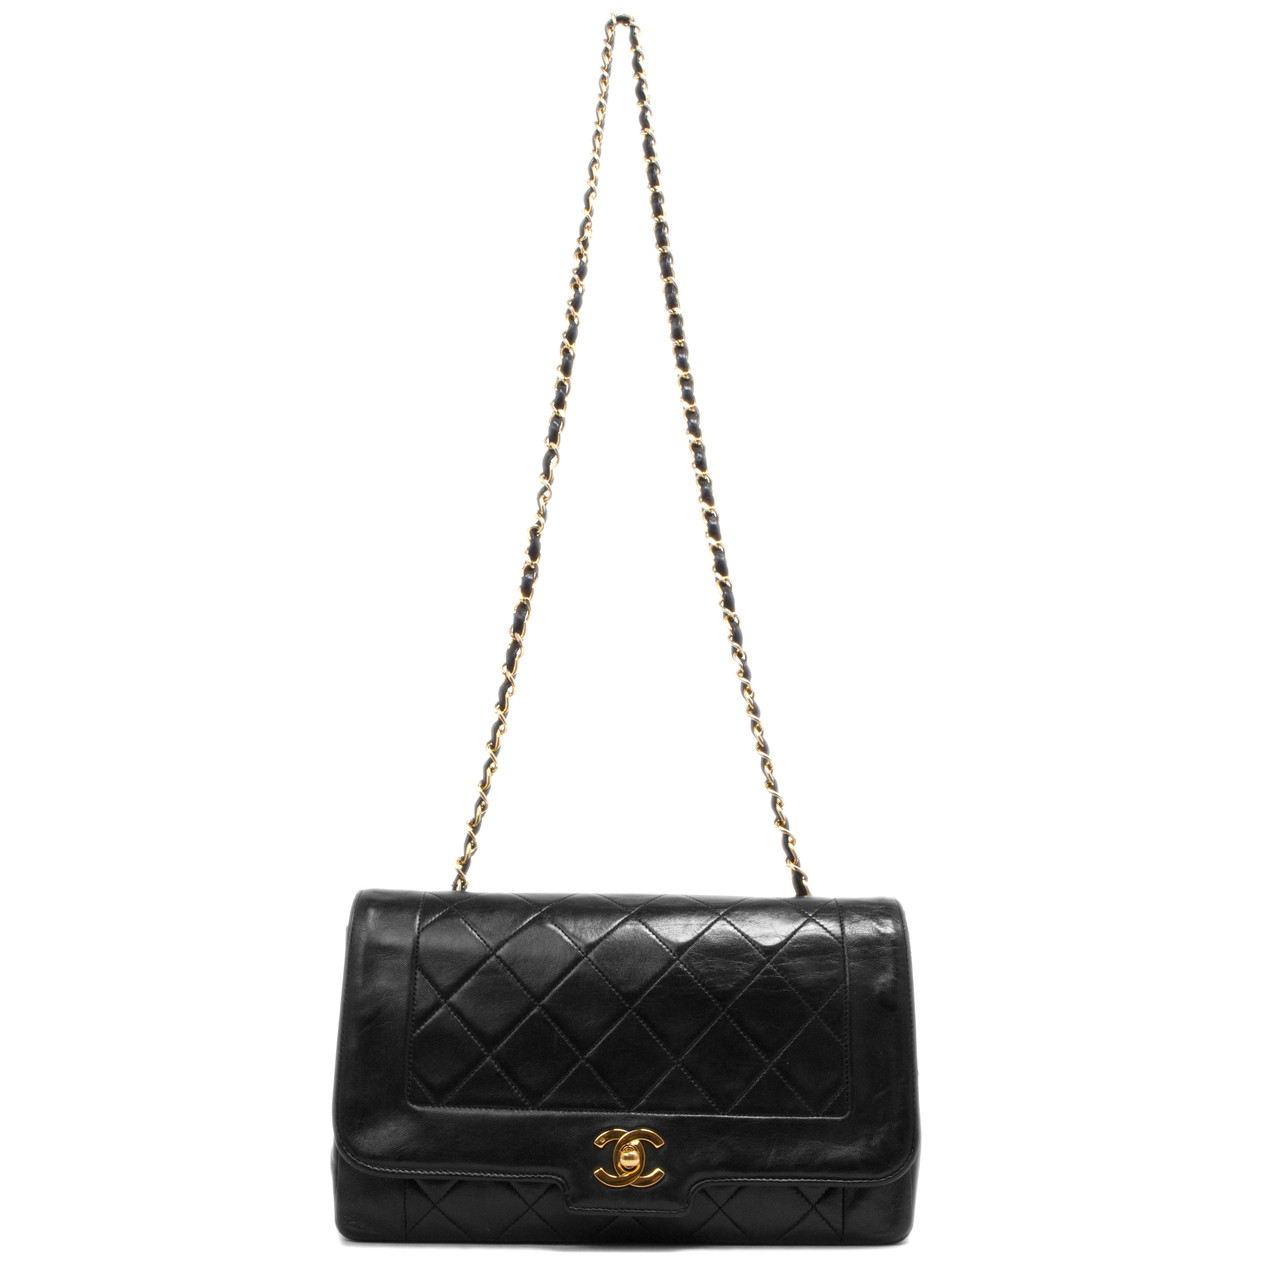 e2793635a3fd Chanel Black Quilted Lambskin Vintage Flap Bag - modaselle